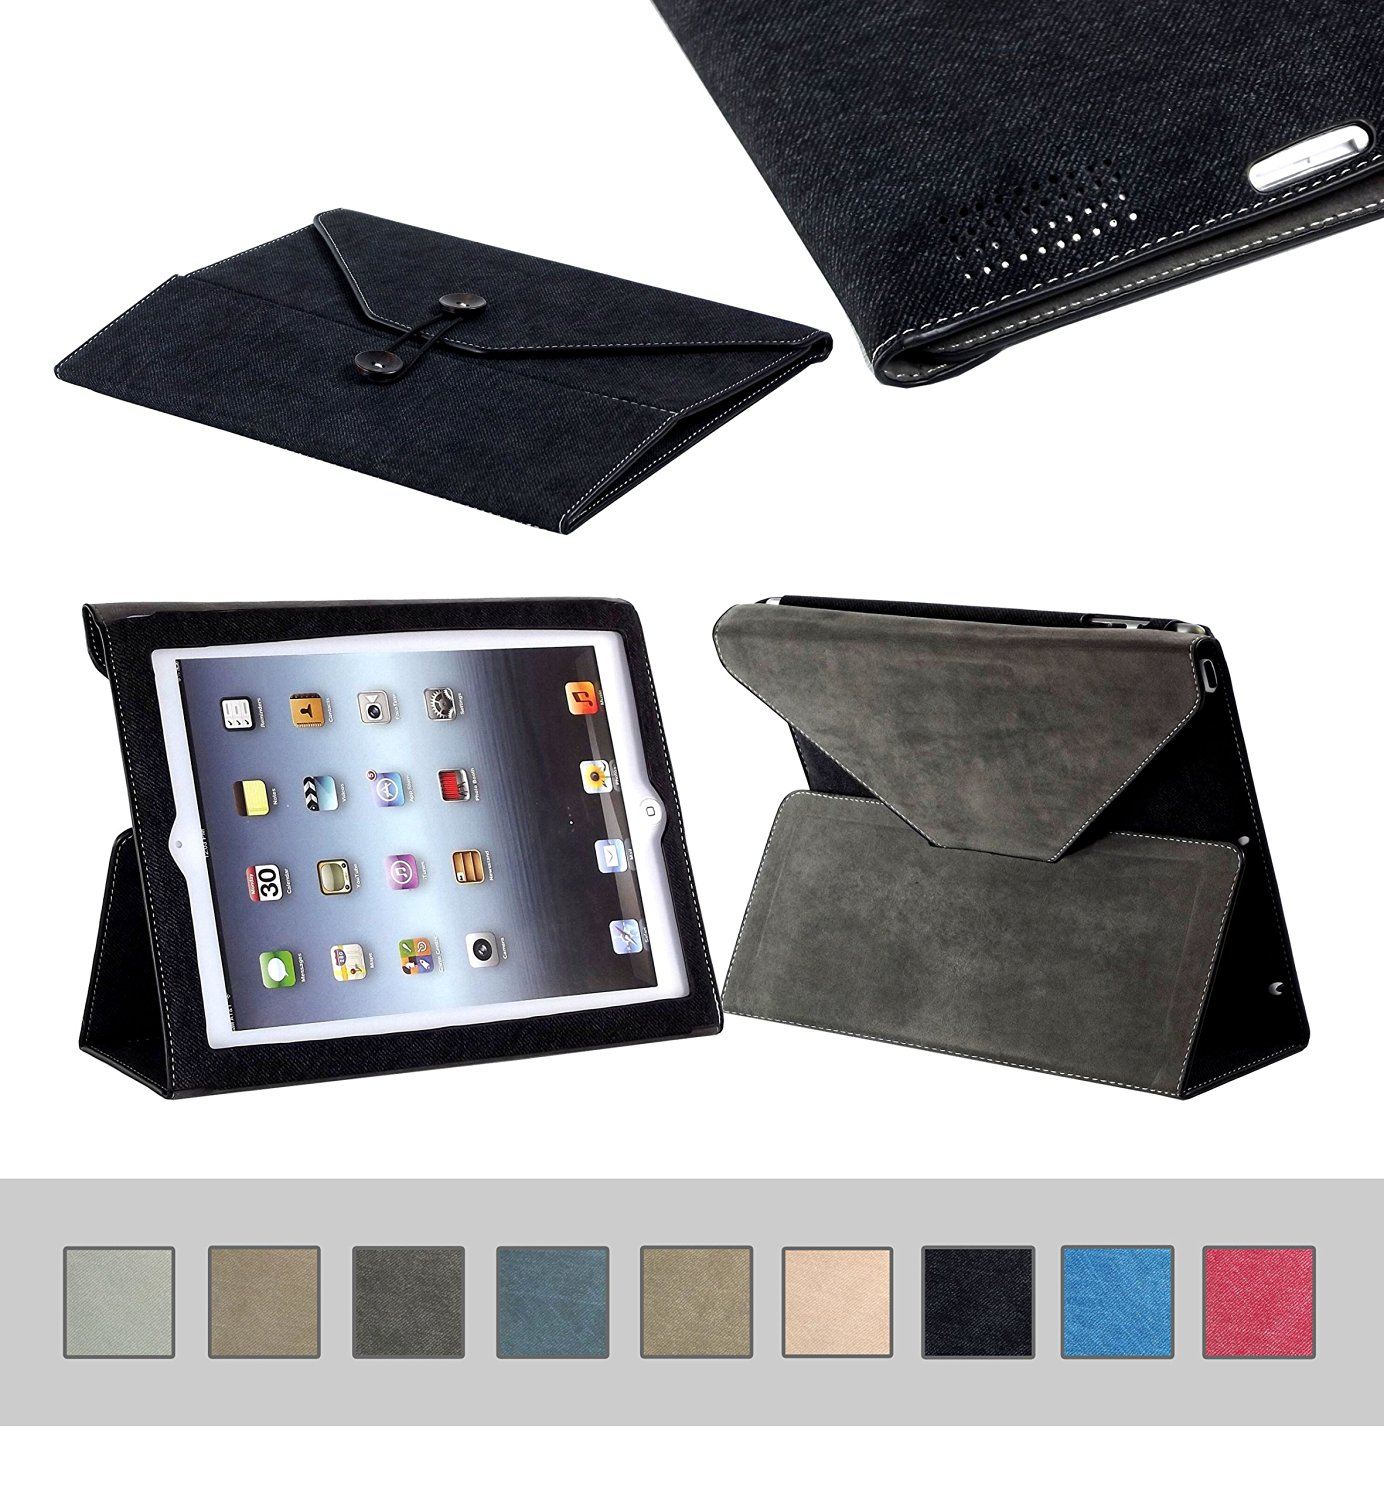 BTM Denim Envelope Jean Portfolio Case Cover Protector for Apple Ipad 2nd 2, 3, 4th 4 Generation Retina Display w/ Elastic Strap & Great Holder | Cute for the Girly Girl | Protective Durable Designer Stand | Cheap Price, Great Value - Black